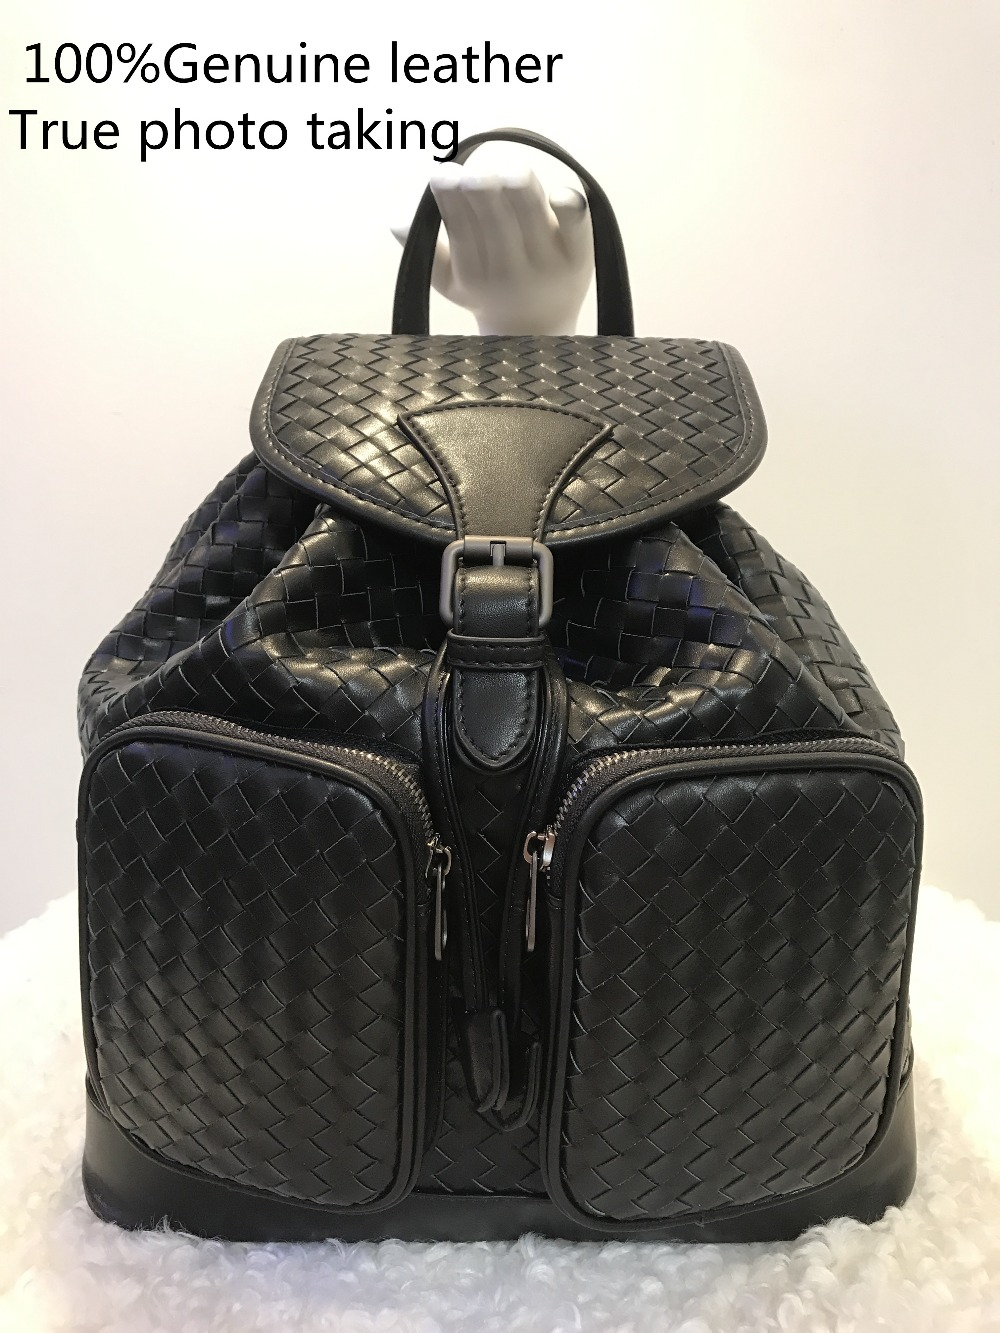 2019New pattern Genuine leather Sheepskin Men and women available High-capacity Woven bag Multi-function fashion 2019New pattern Genuine leather Sheepskin Men and women available High-capacity Woven bag Multi-function fashion